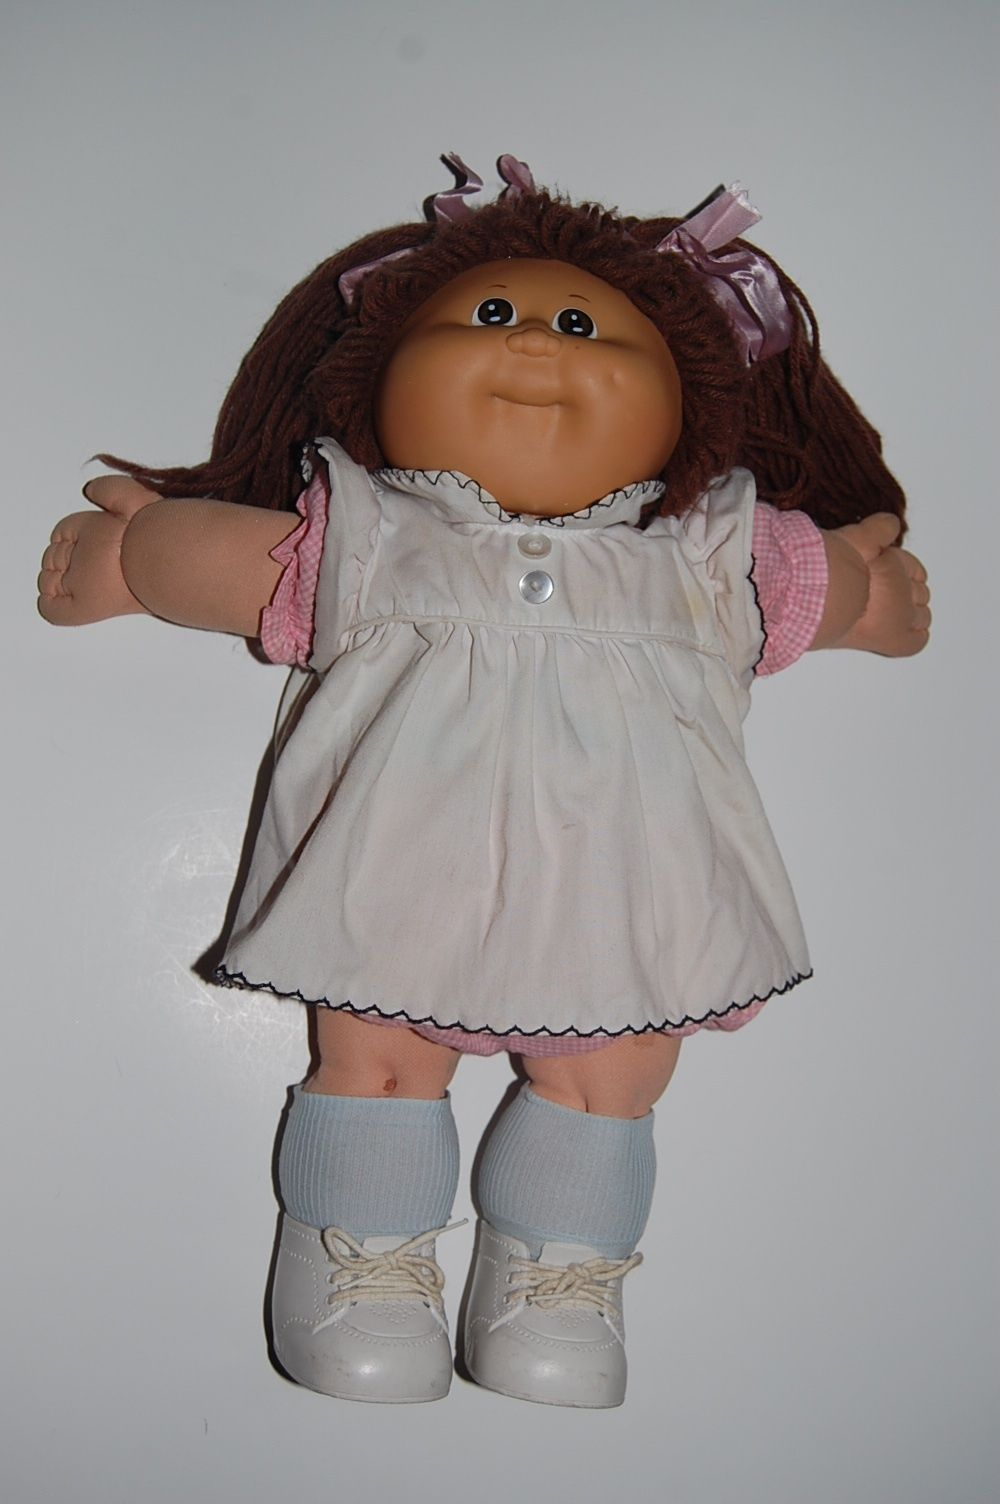 NEW SOCKS TO FIT THE MY CHILD AND CABBAGE PATCH DOLL ADDITIONAL PAIRS SHIP FREE